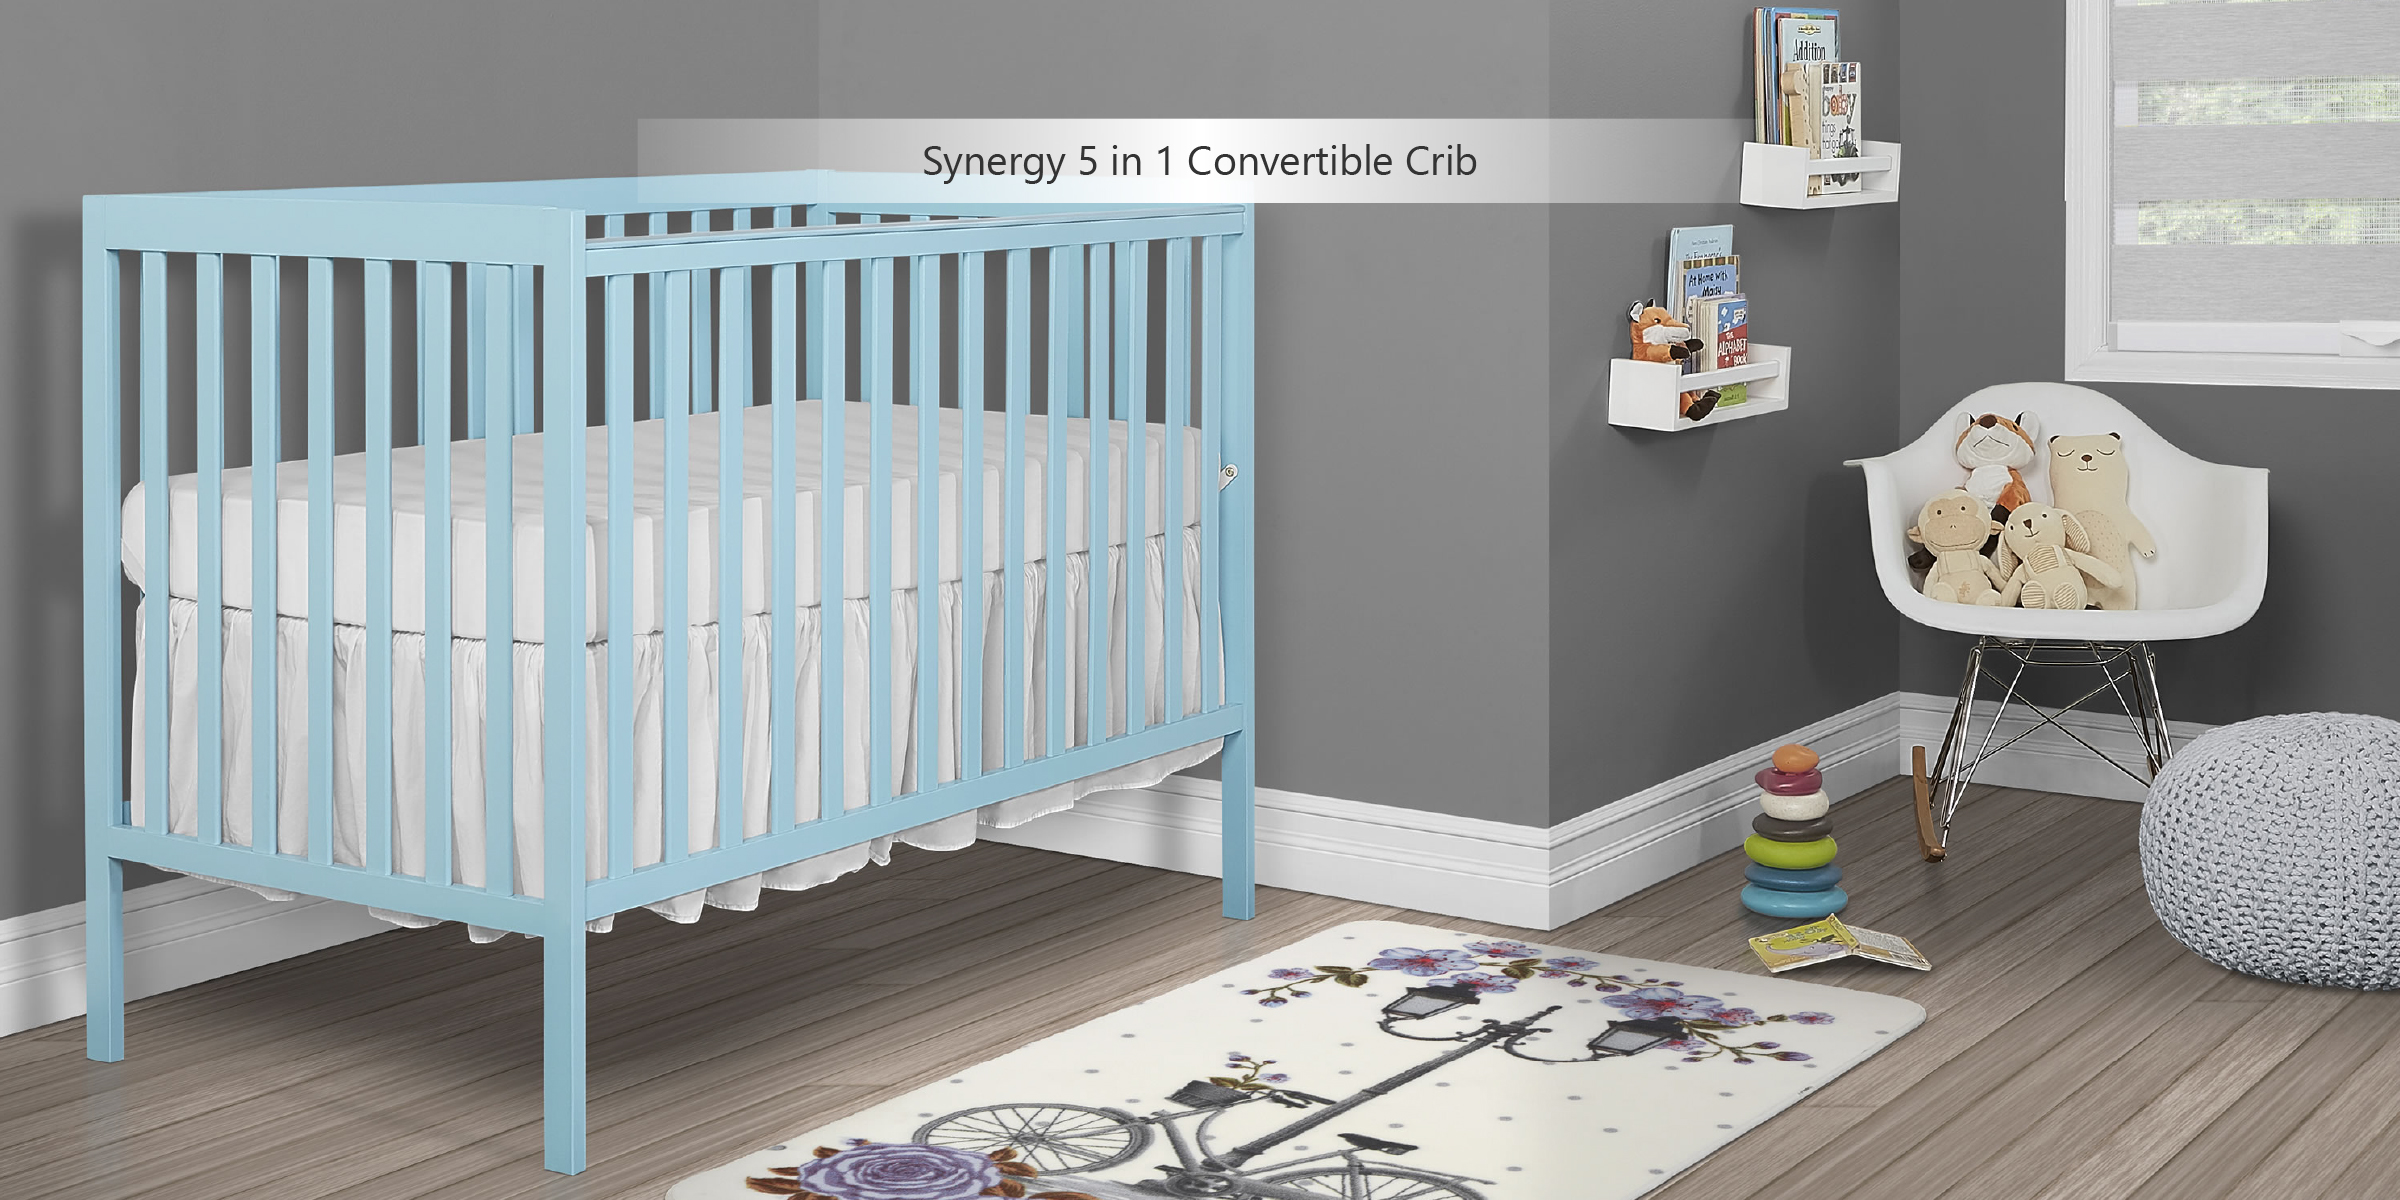 Synergy-5-in-1-Convertible-Crib